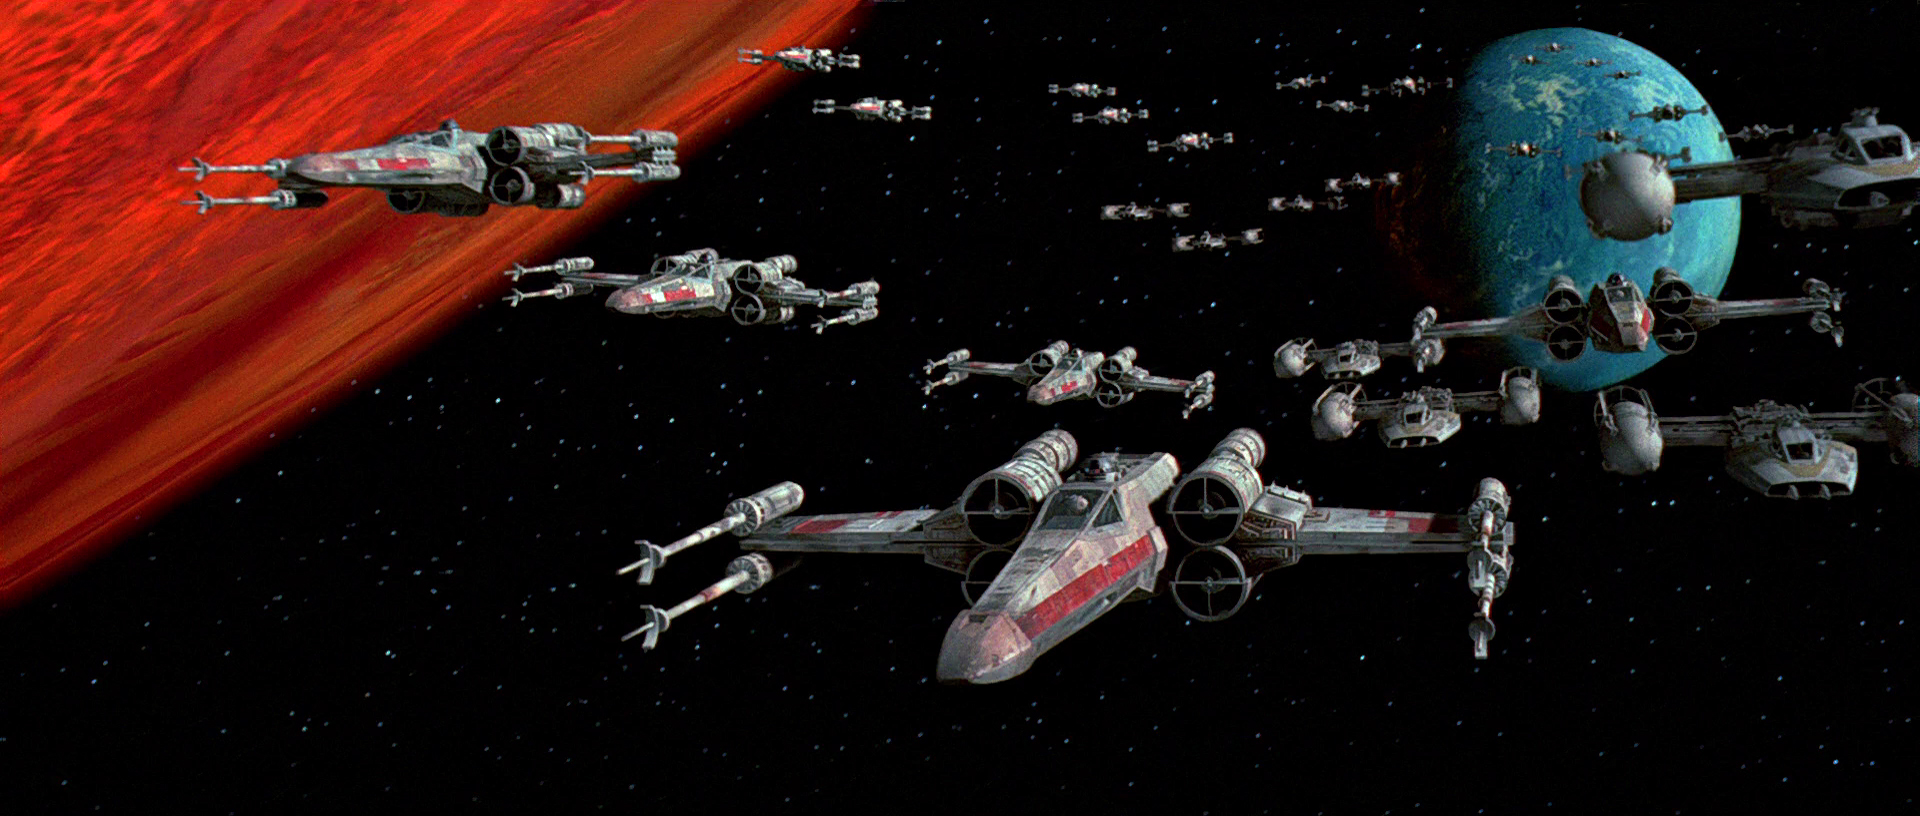 Star wars a new hope release date in Perth